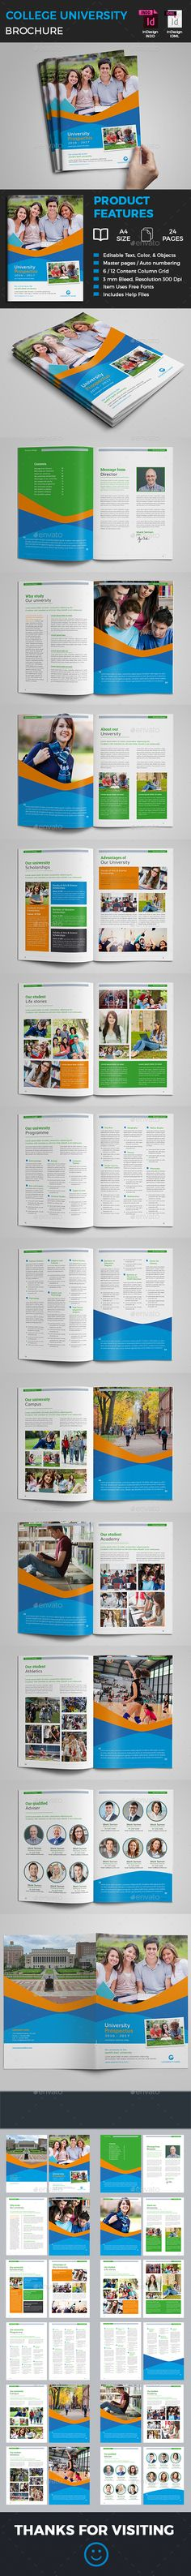 University - College Brochure Template - 16 Pages | Indesign